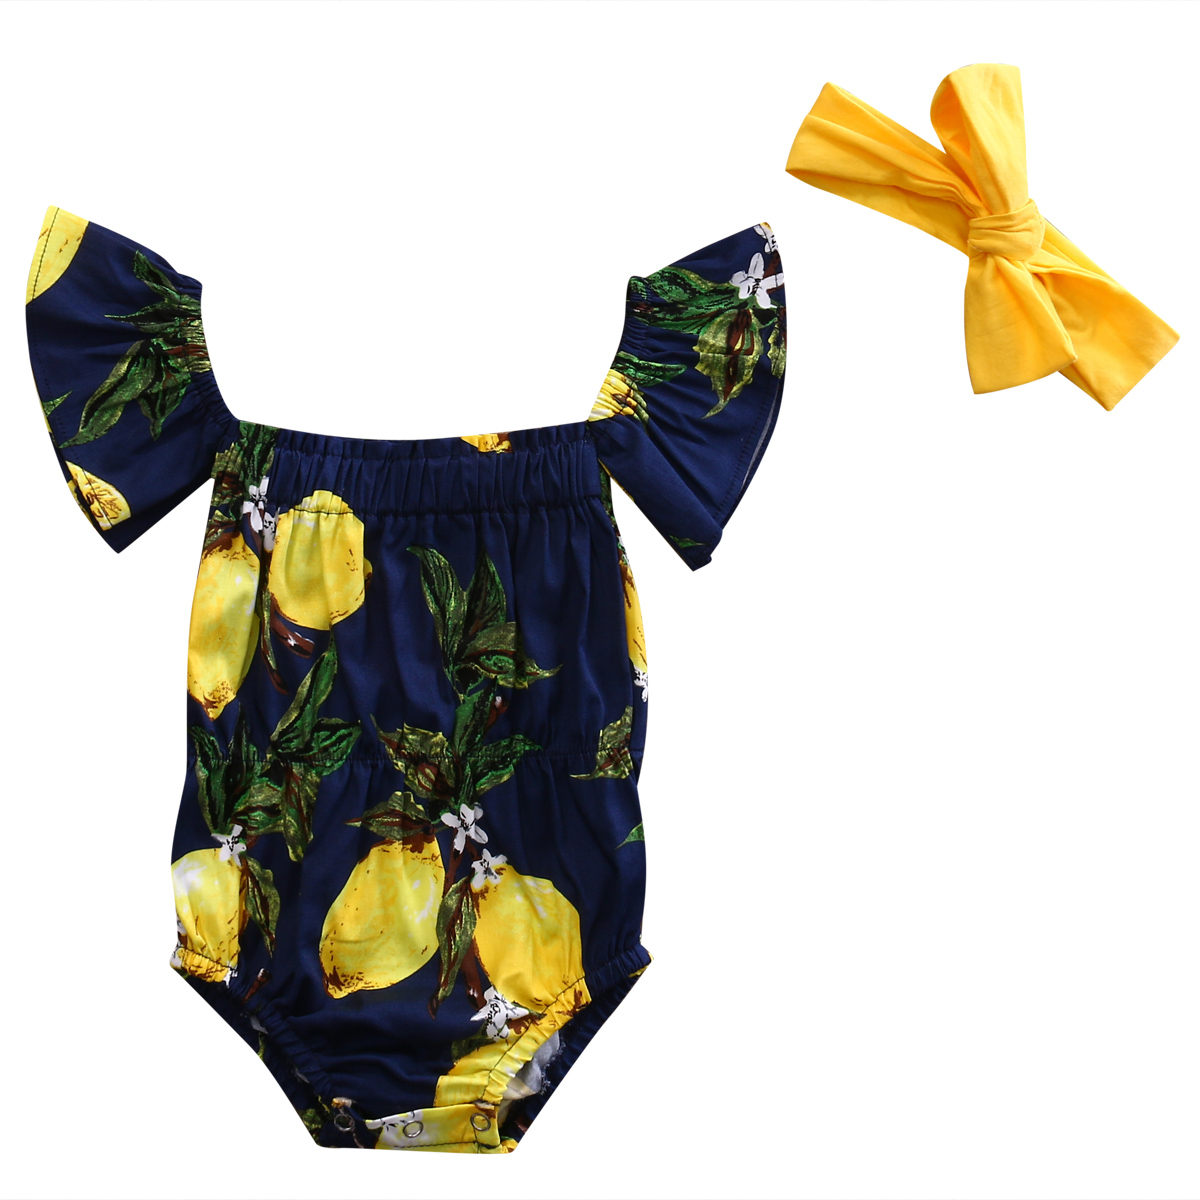 Cute Newborn Baby Girl Clothes 2017 Summer Off shoulder Pear Printed Toddler Kids Jumpsuit +Headband Outfits Sunsuit Clothing